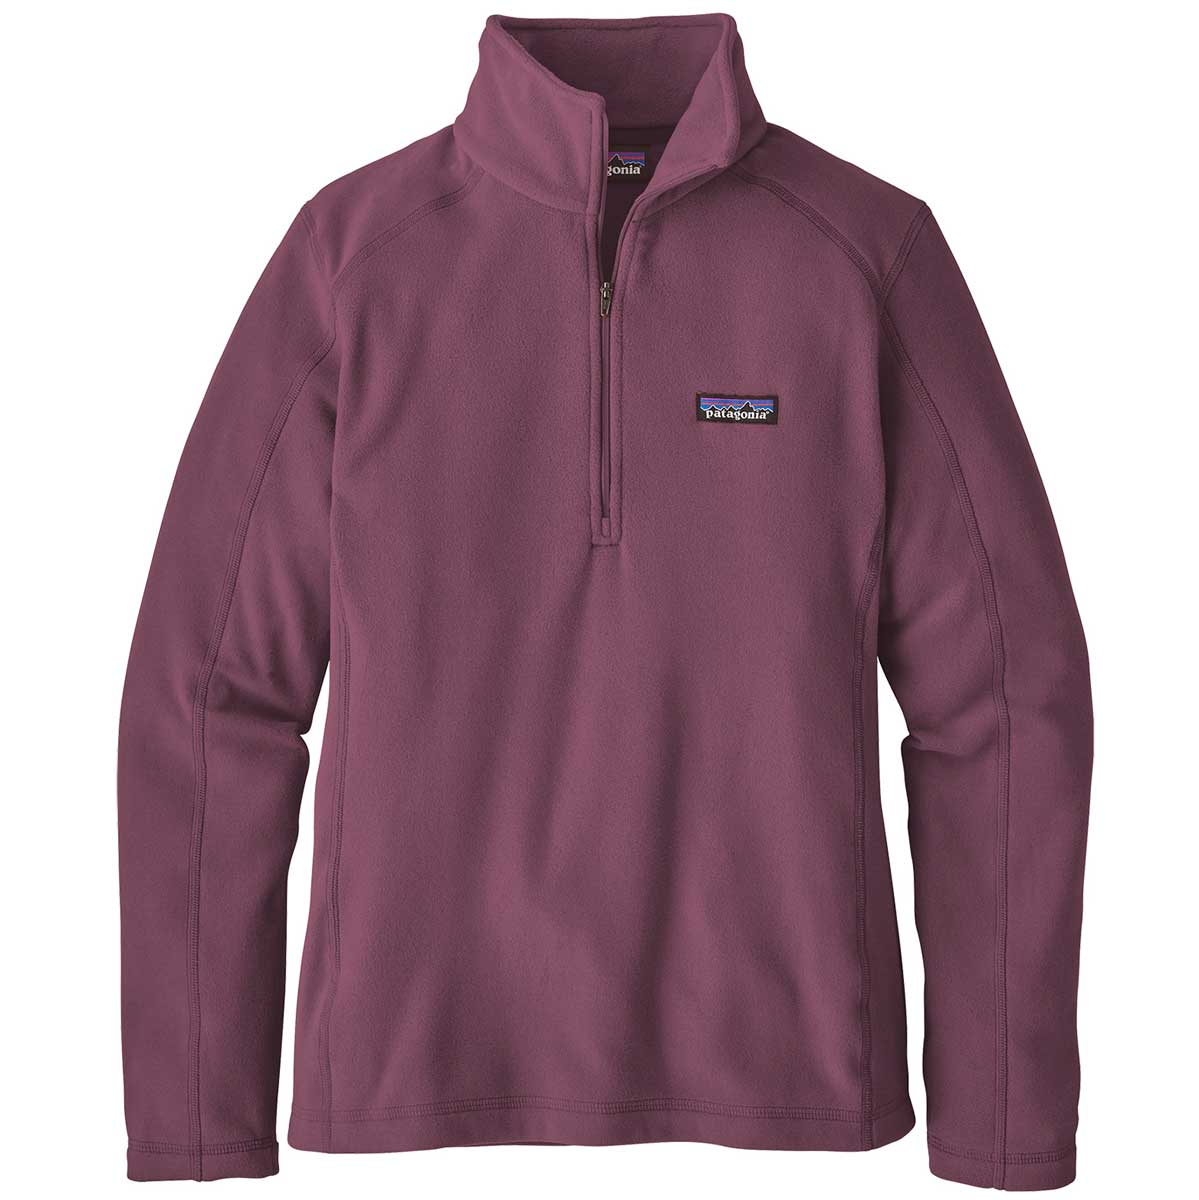 Patagonia women's Micro D 1/4 Zip Top in Light Balsamic front view